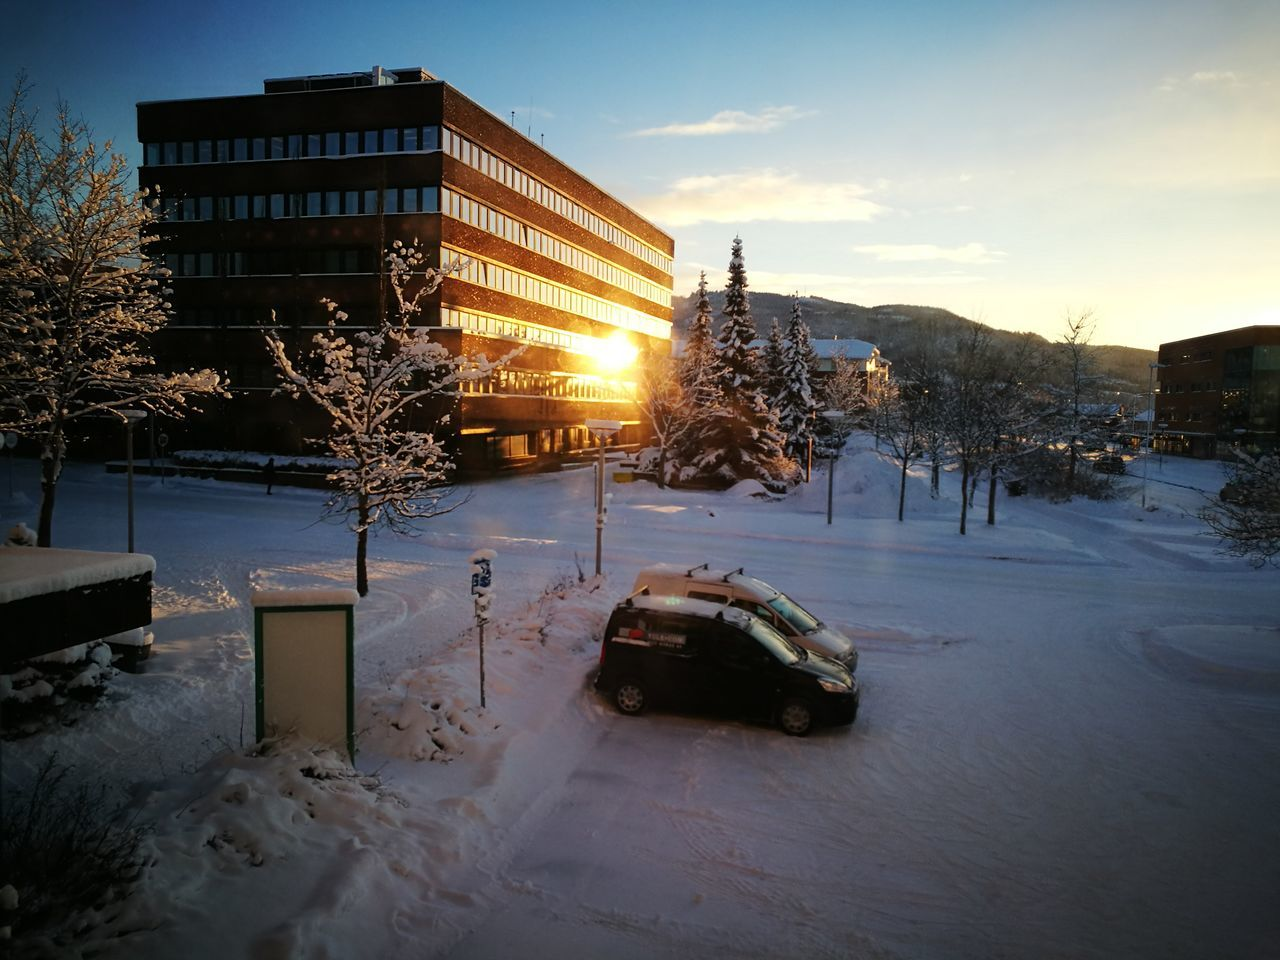 Steinkjer City Hall on fire my setting winter sun. Winter Snow Car City Reflection Cold Temperature Illuminated Sunset No People Architecture Tree Outdoors Day Building Exterior Built Structure City Architecture Sky On Fire Winter Golden